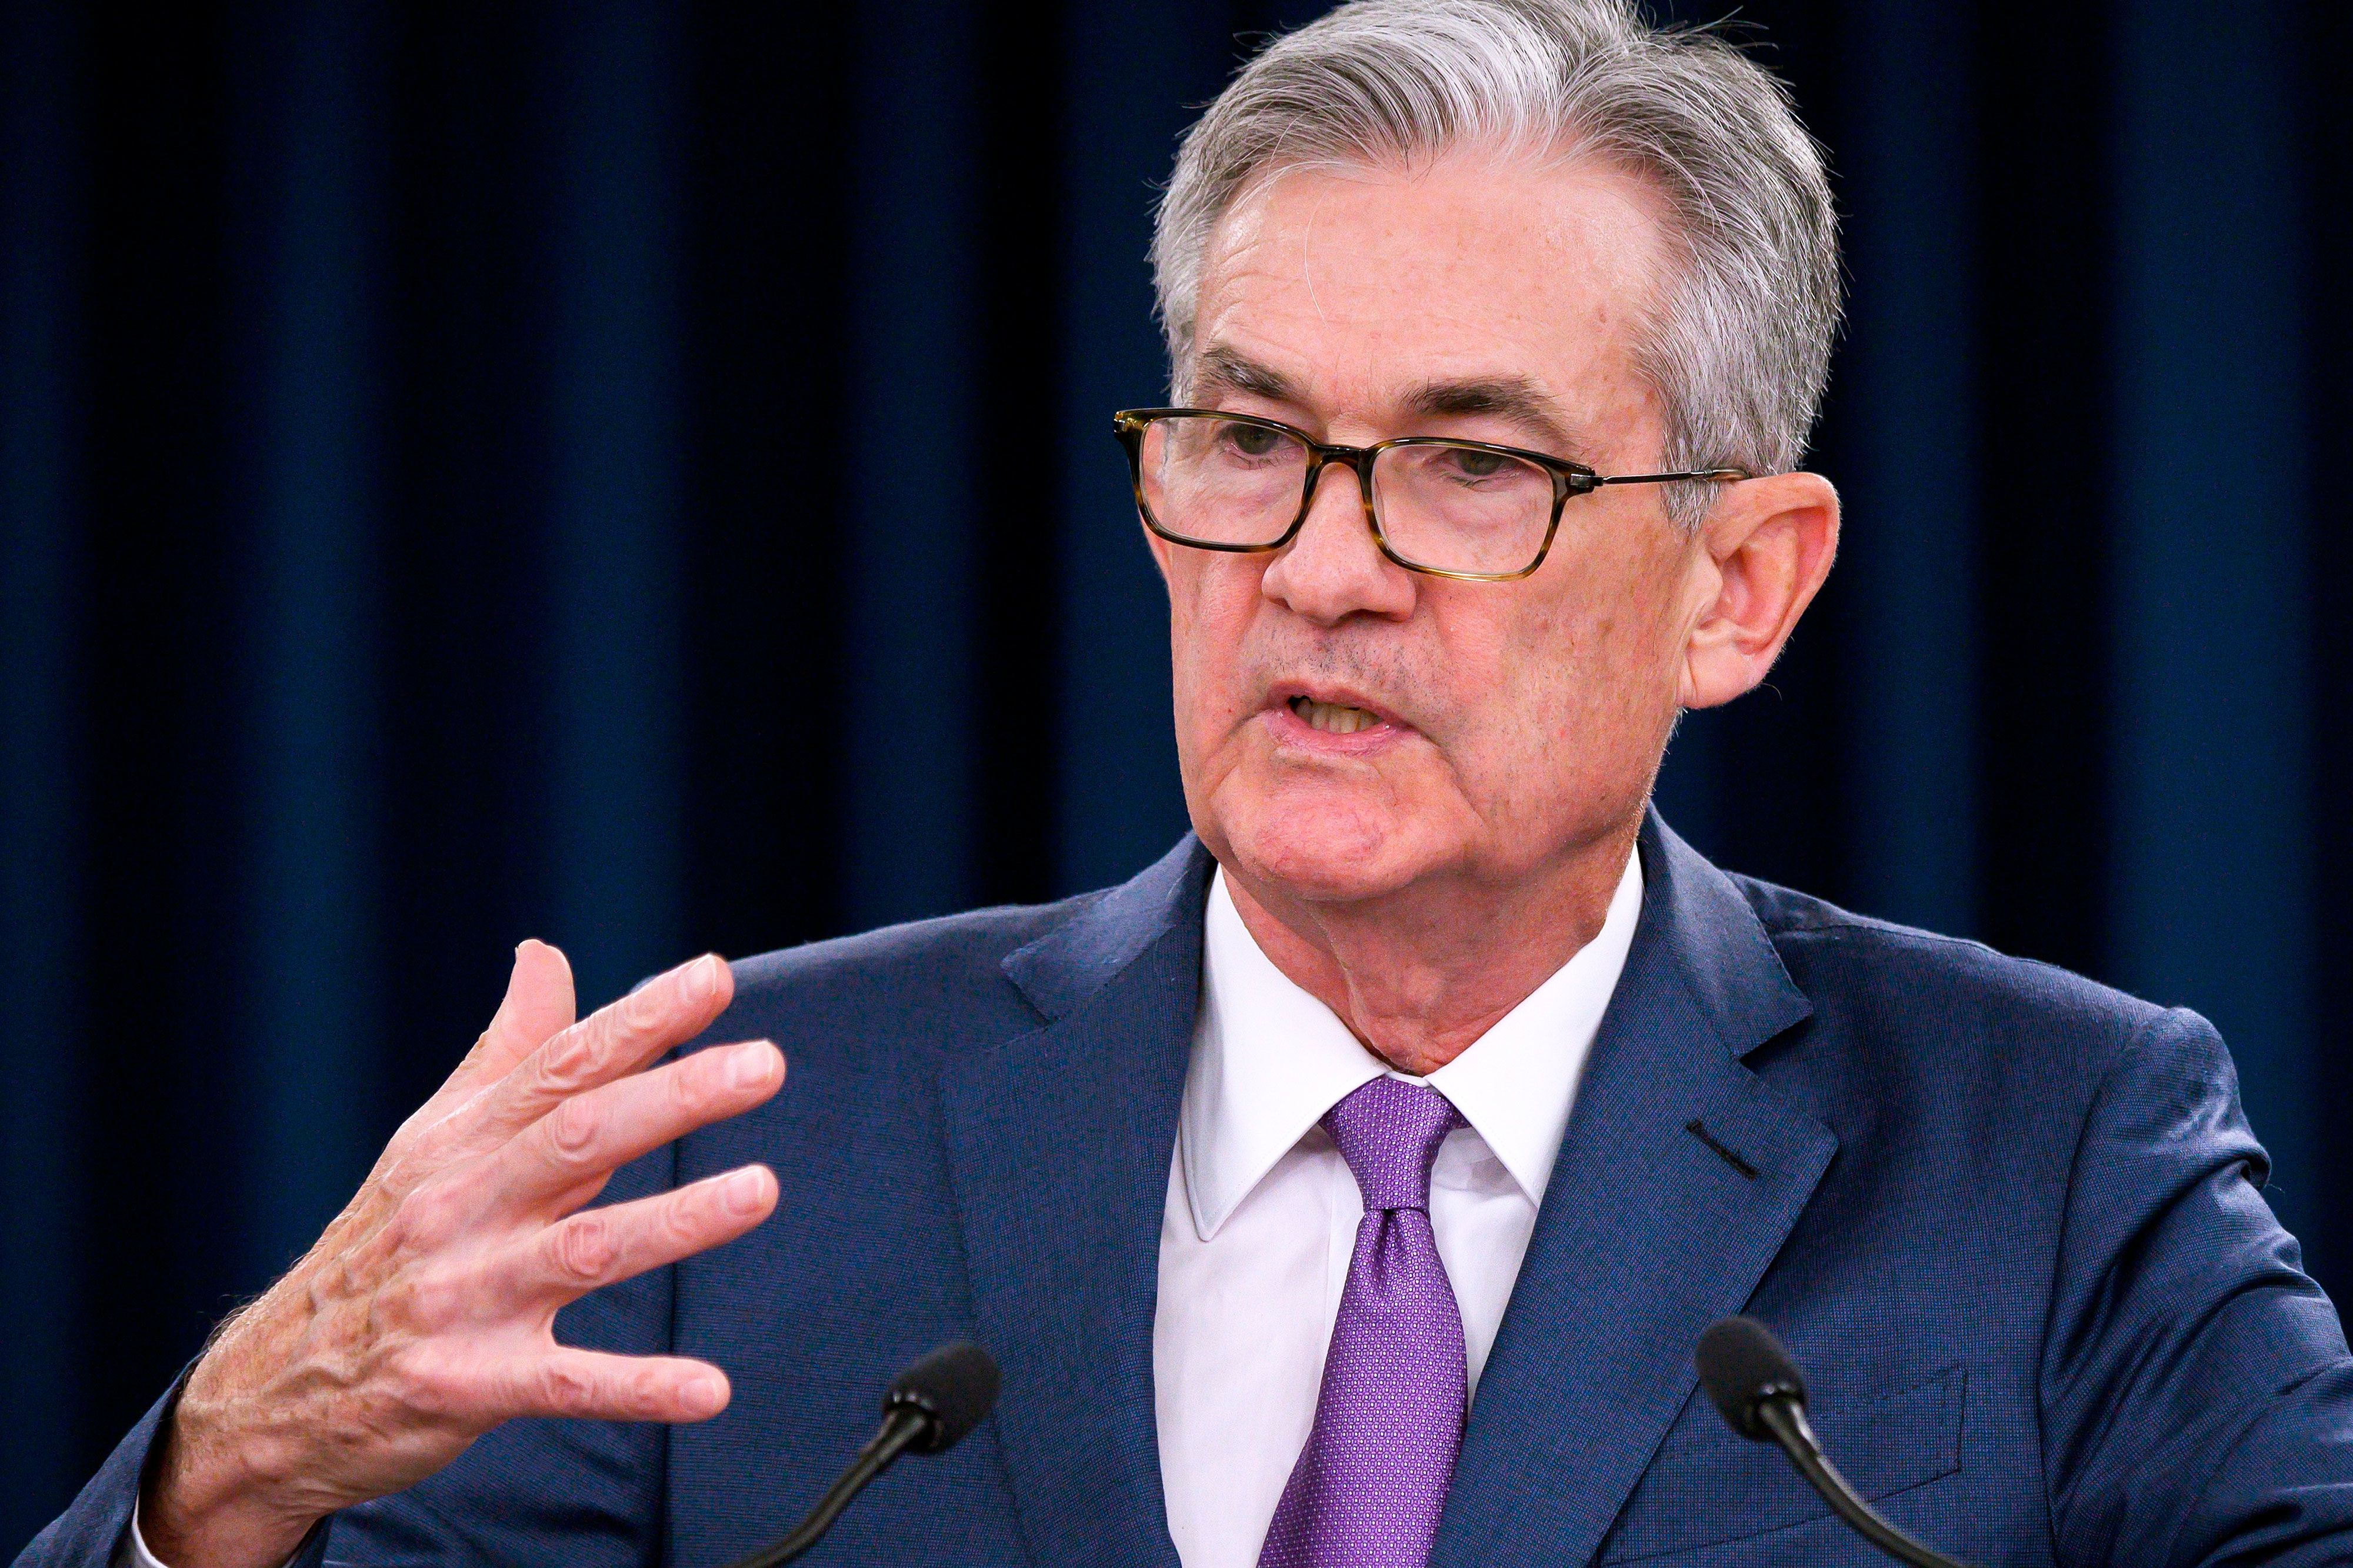 Fed disappoints markets, more neutral than dovish